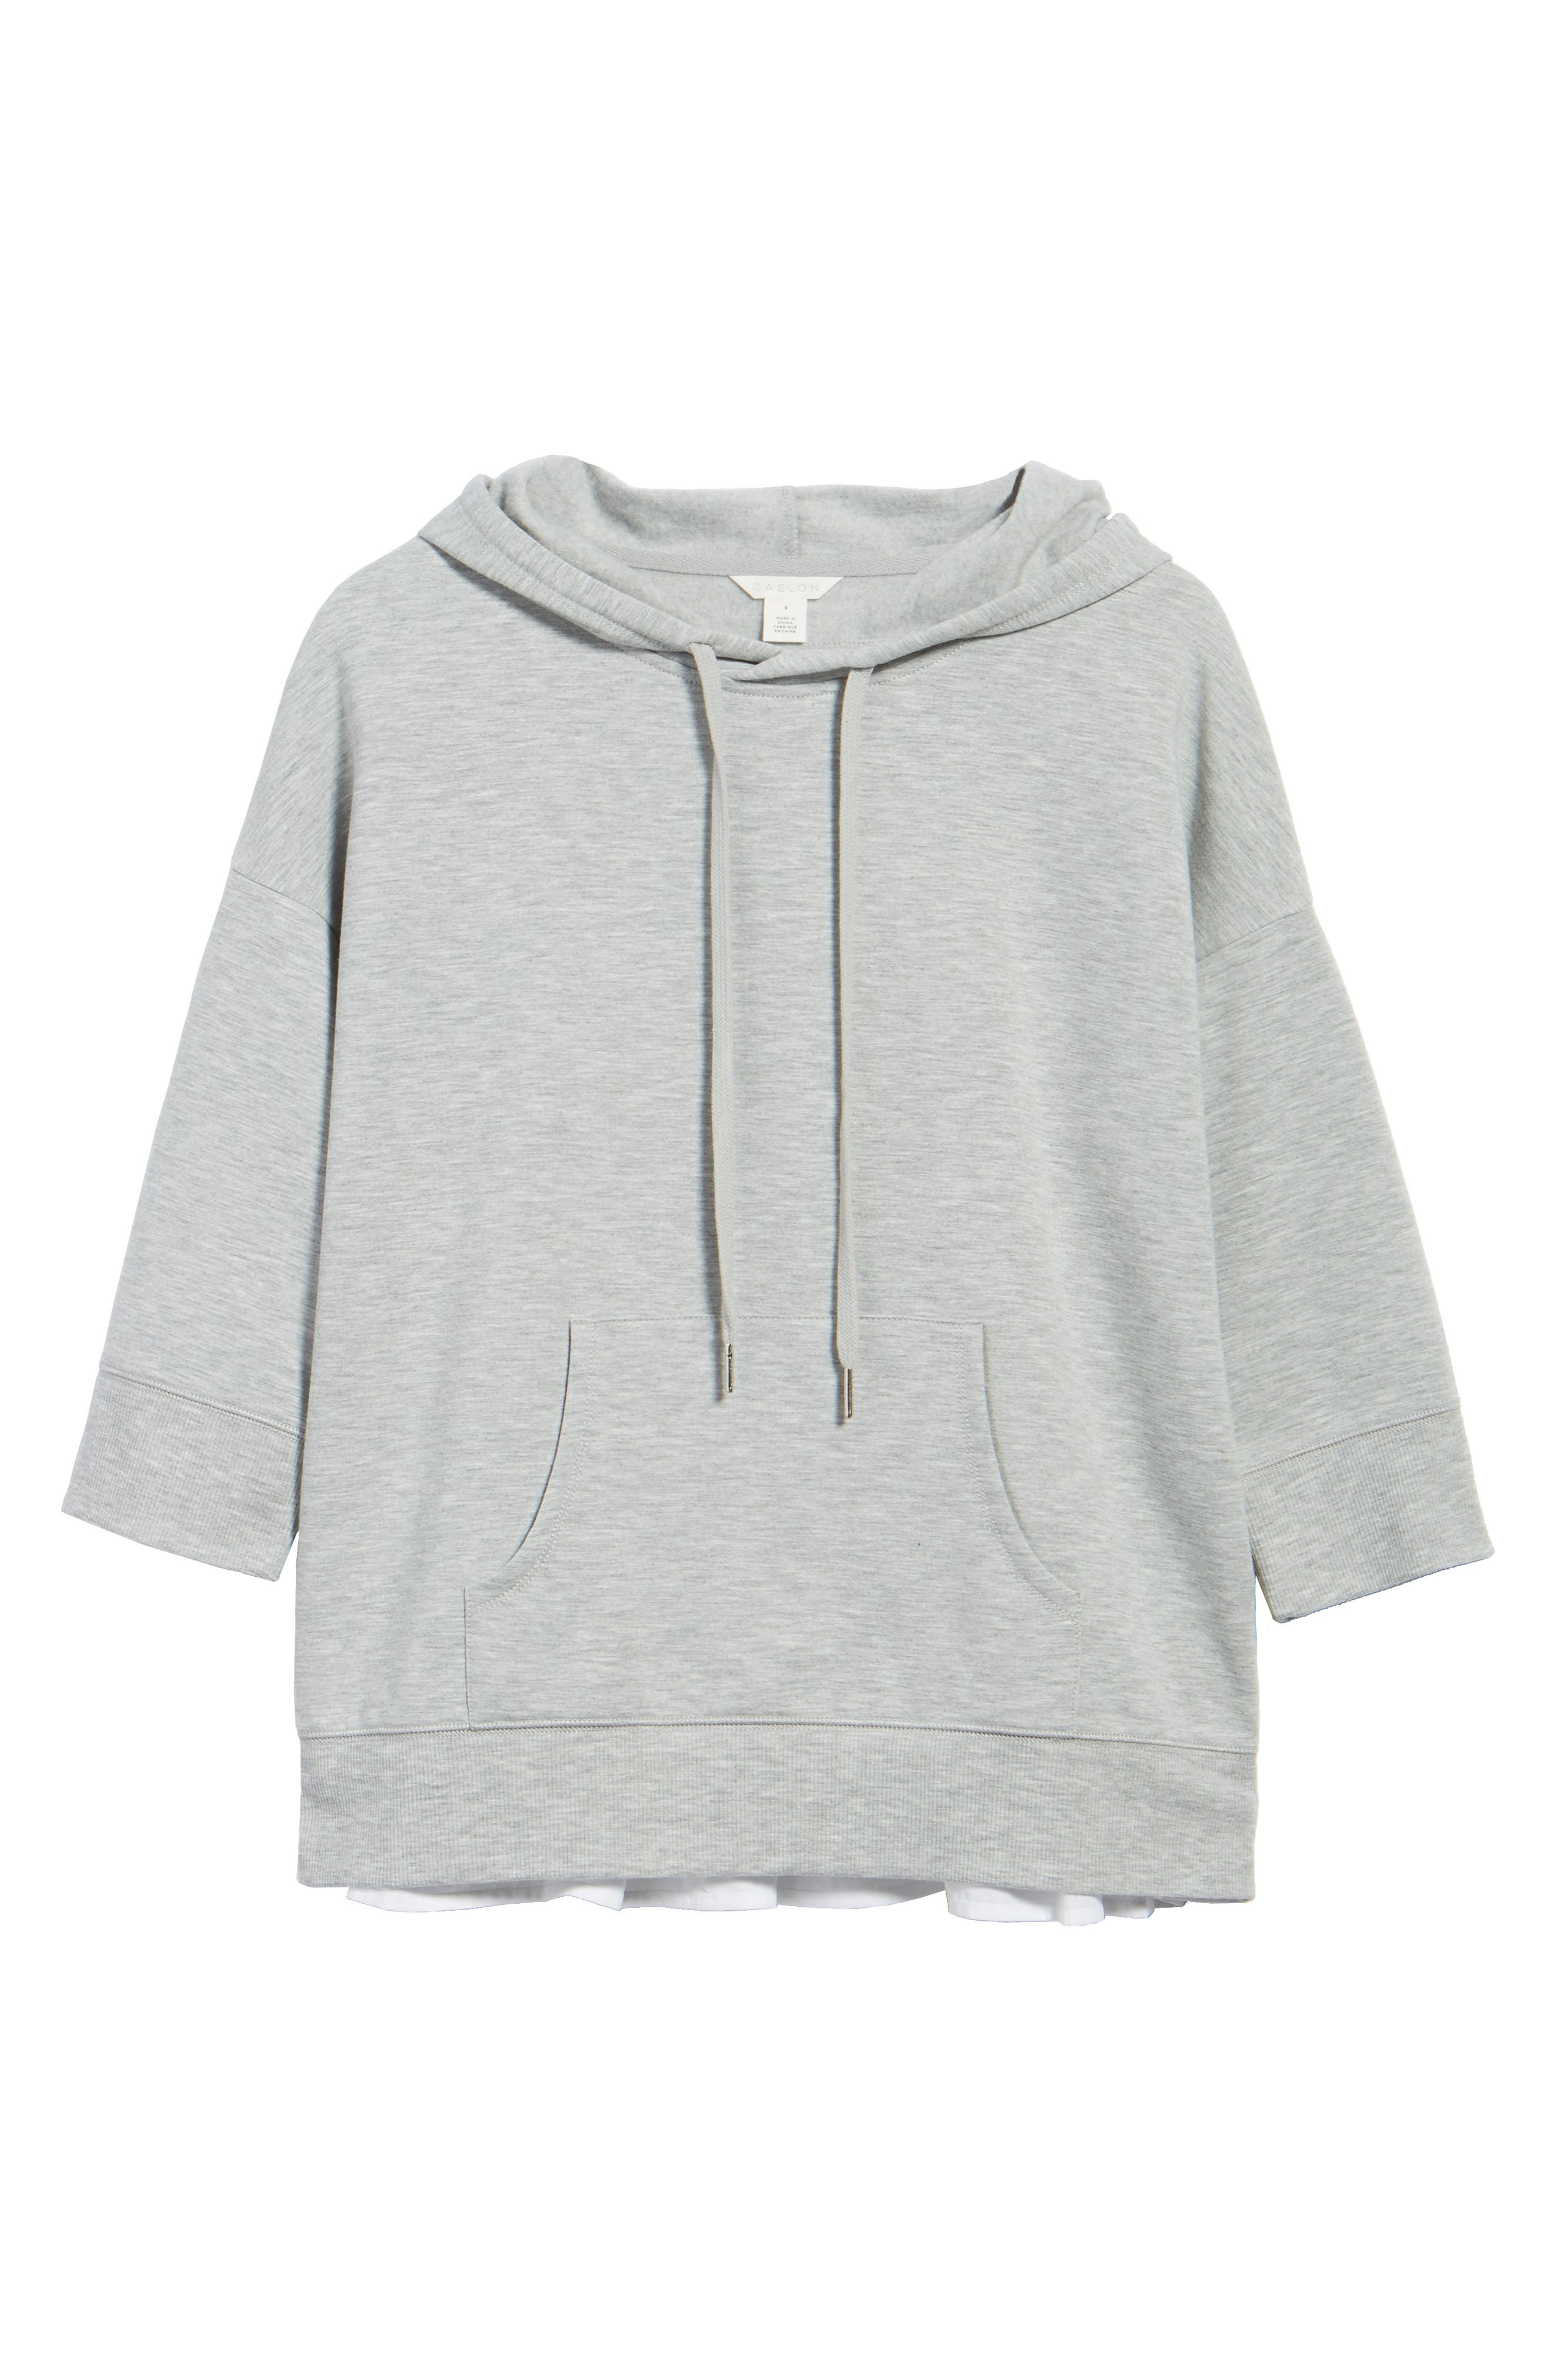 Woven Inset Knit Hoodie,                             Alternate thumbnail 6, color,                             Heather Grey